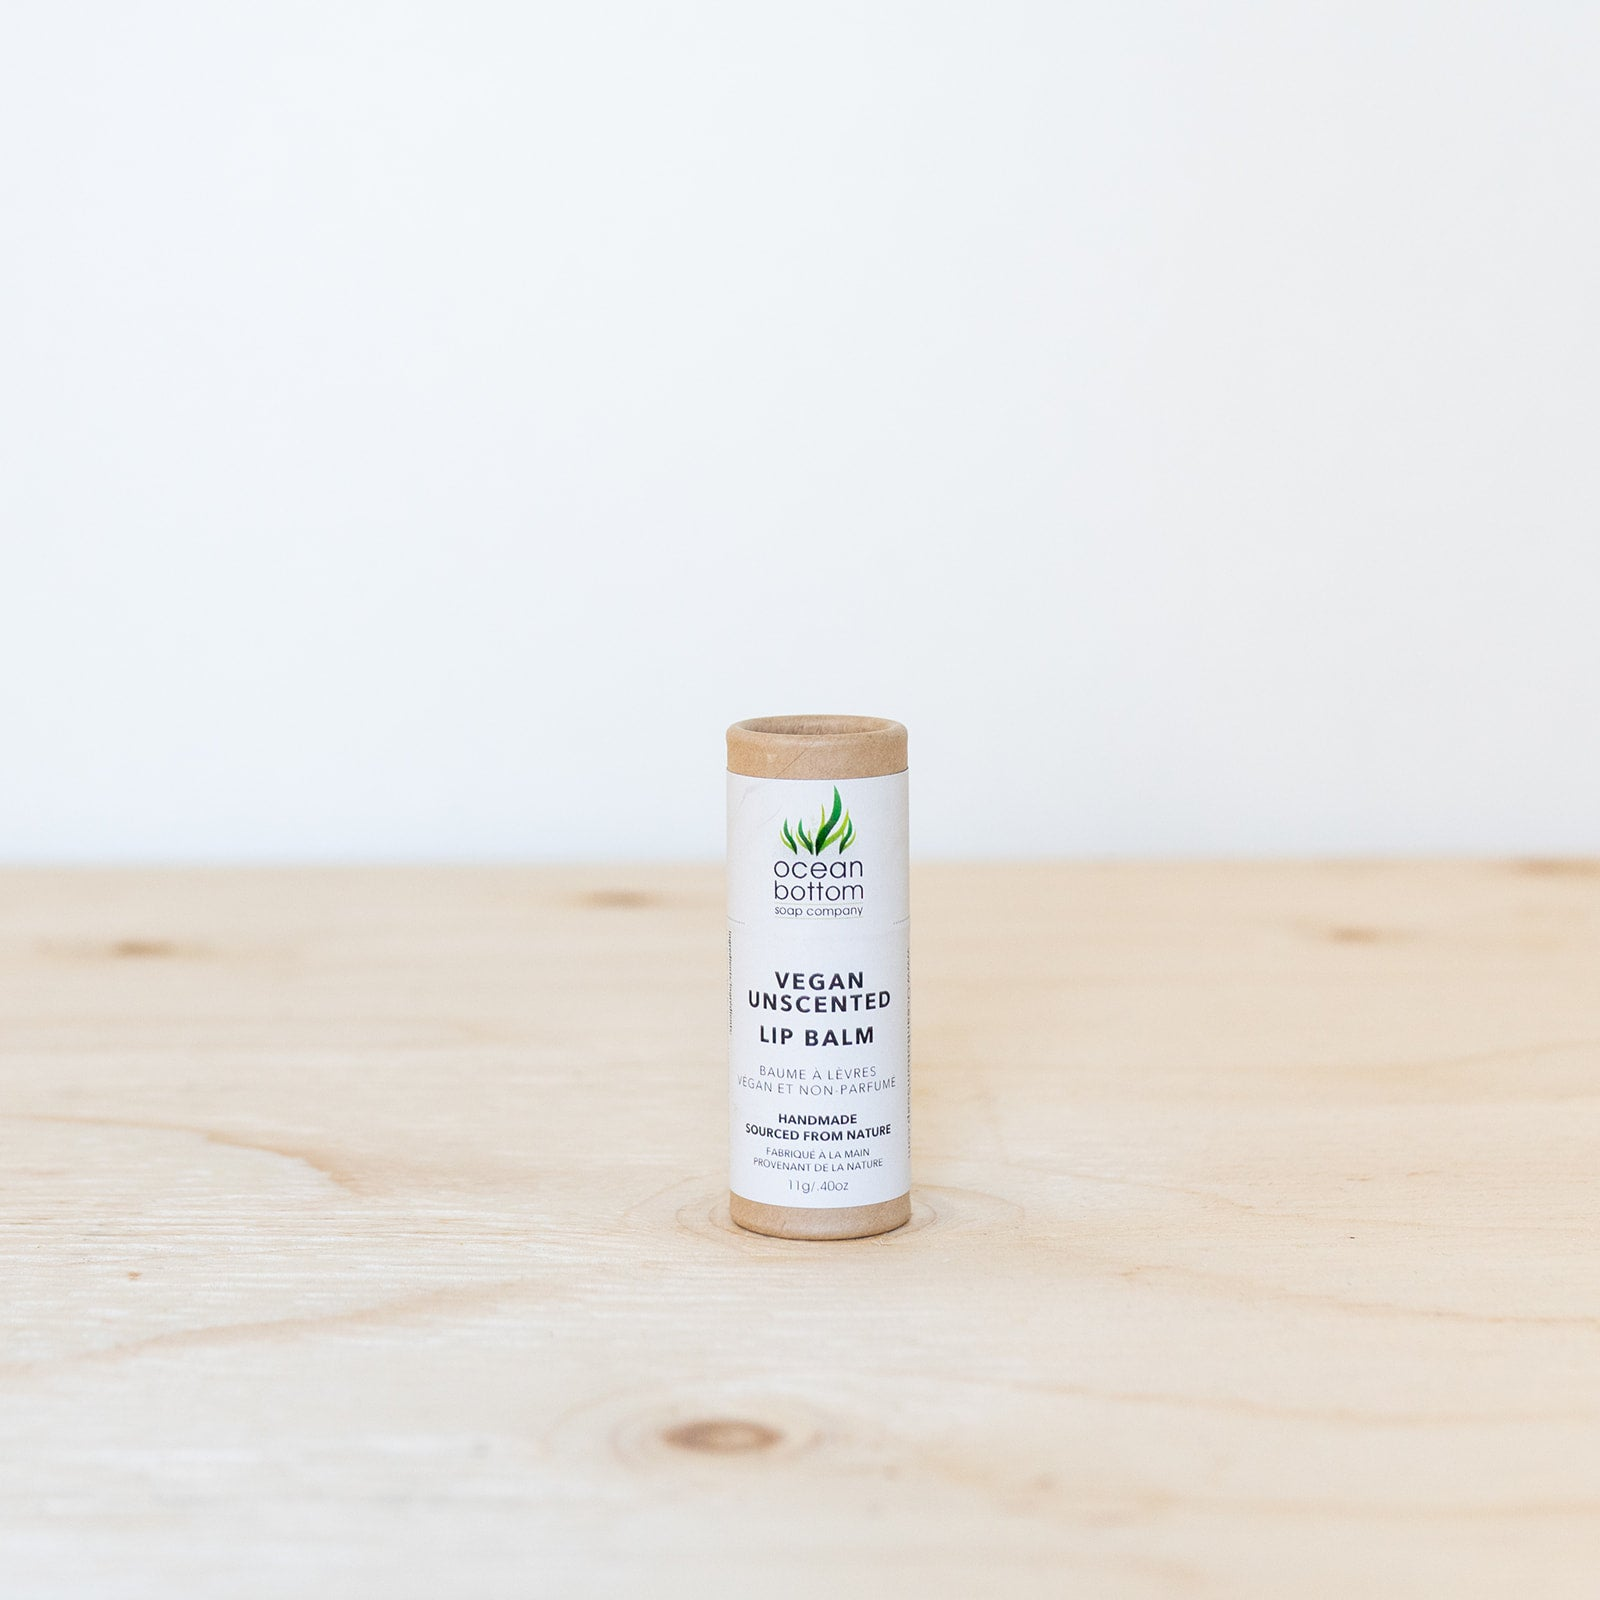 Vegan Unscented Lip Balm